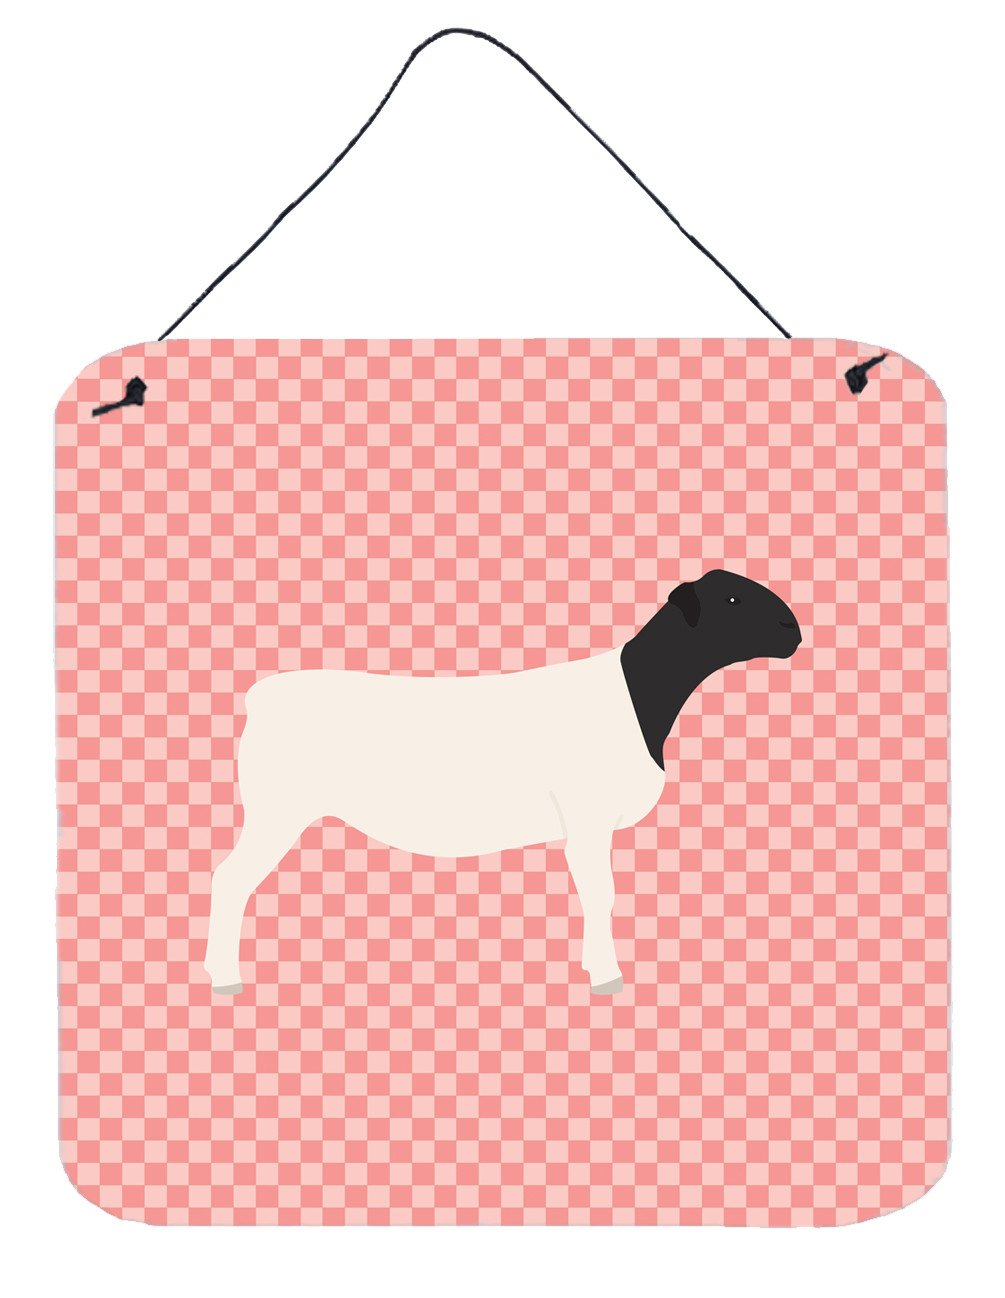 Dorper Sheep Pink Check Wall or Door Hanging Prints BB7978DS66 by Caroline's Treasures